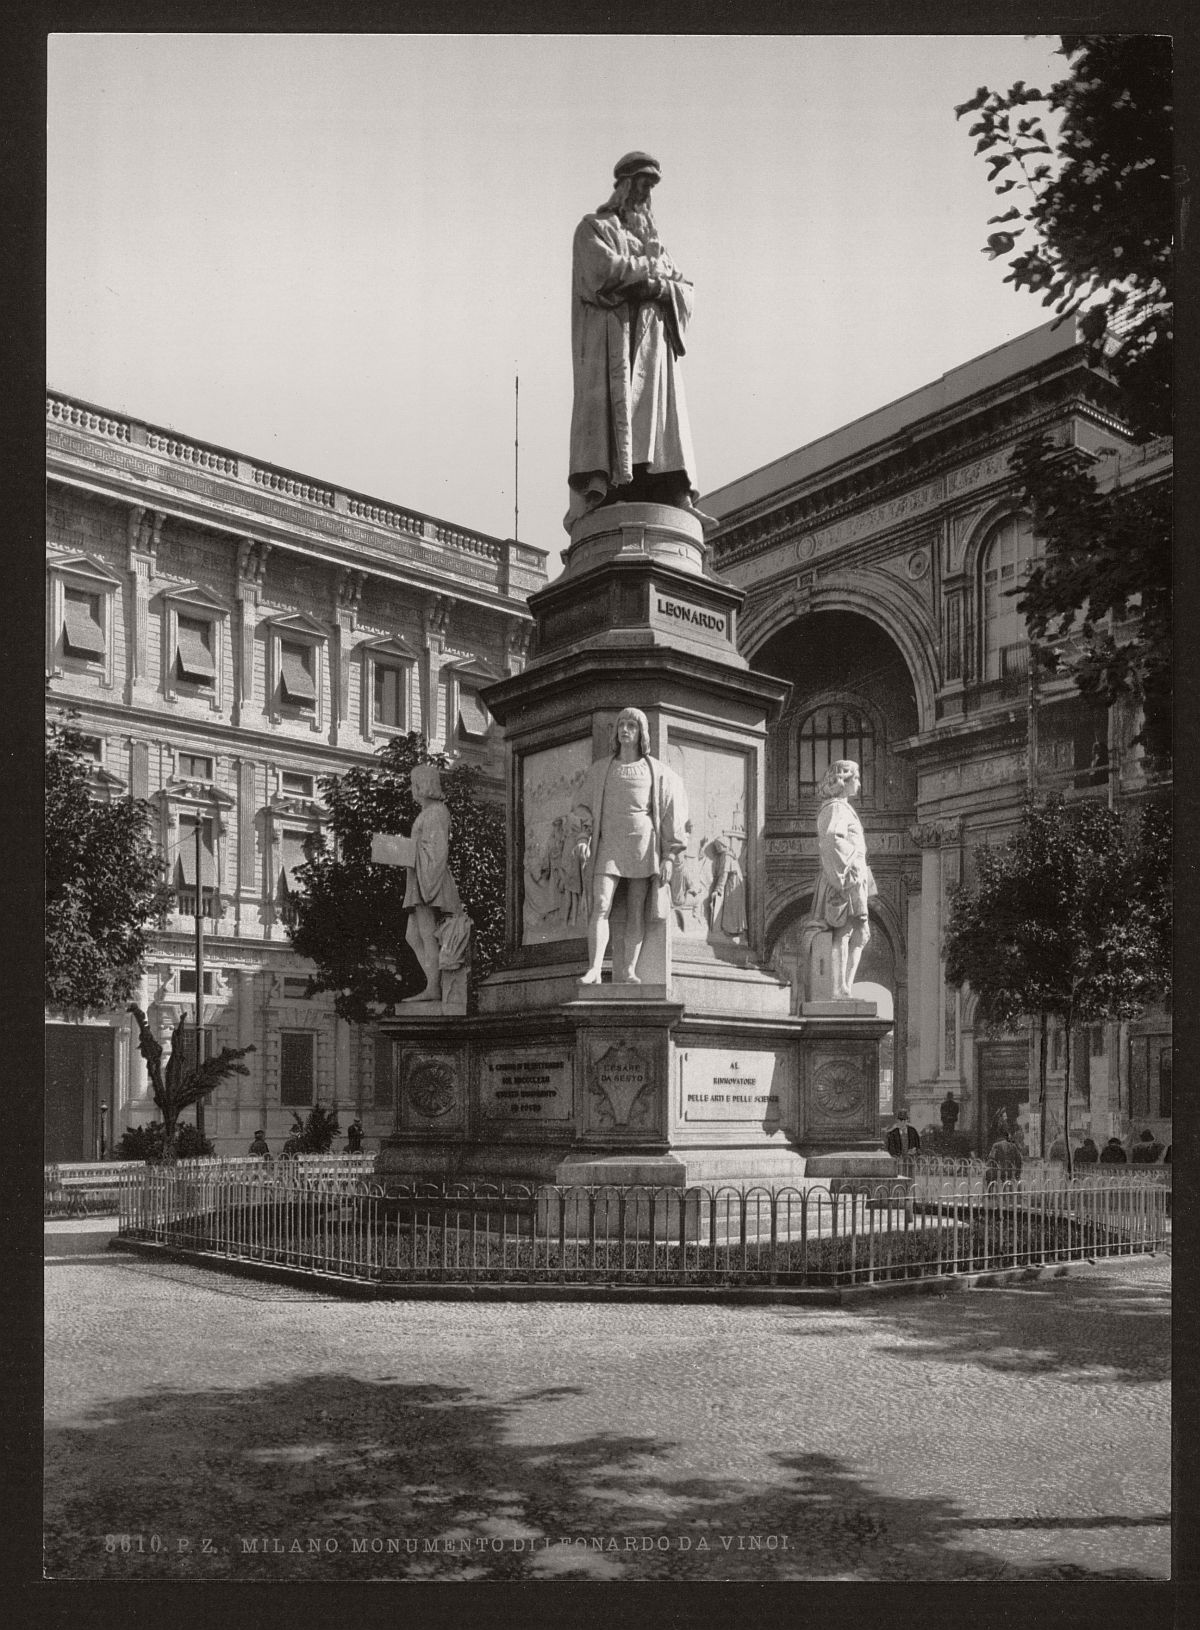 historic-bw-photos-of-milan-italy-in-19th-century-09